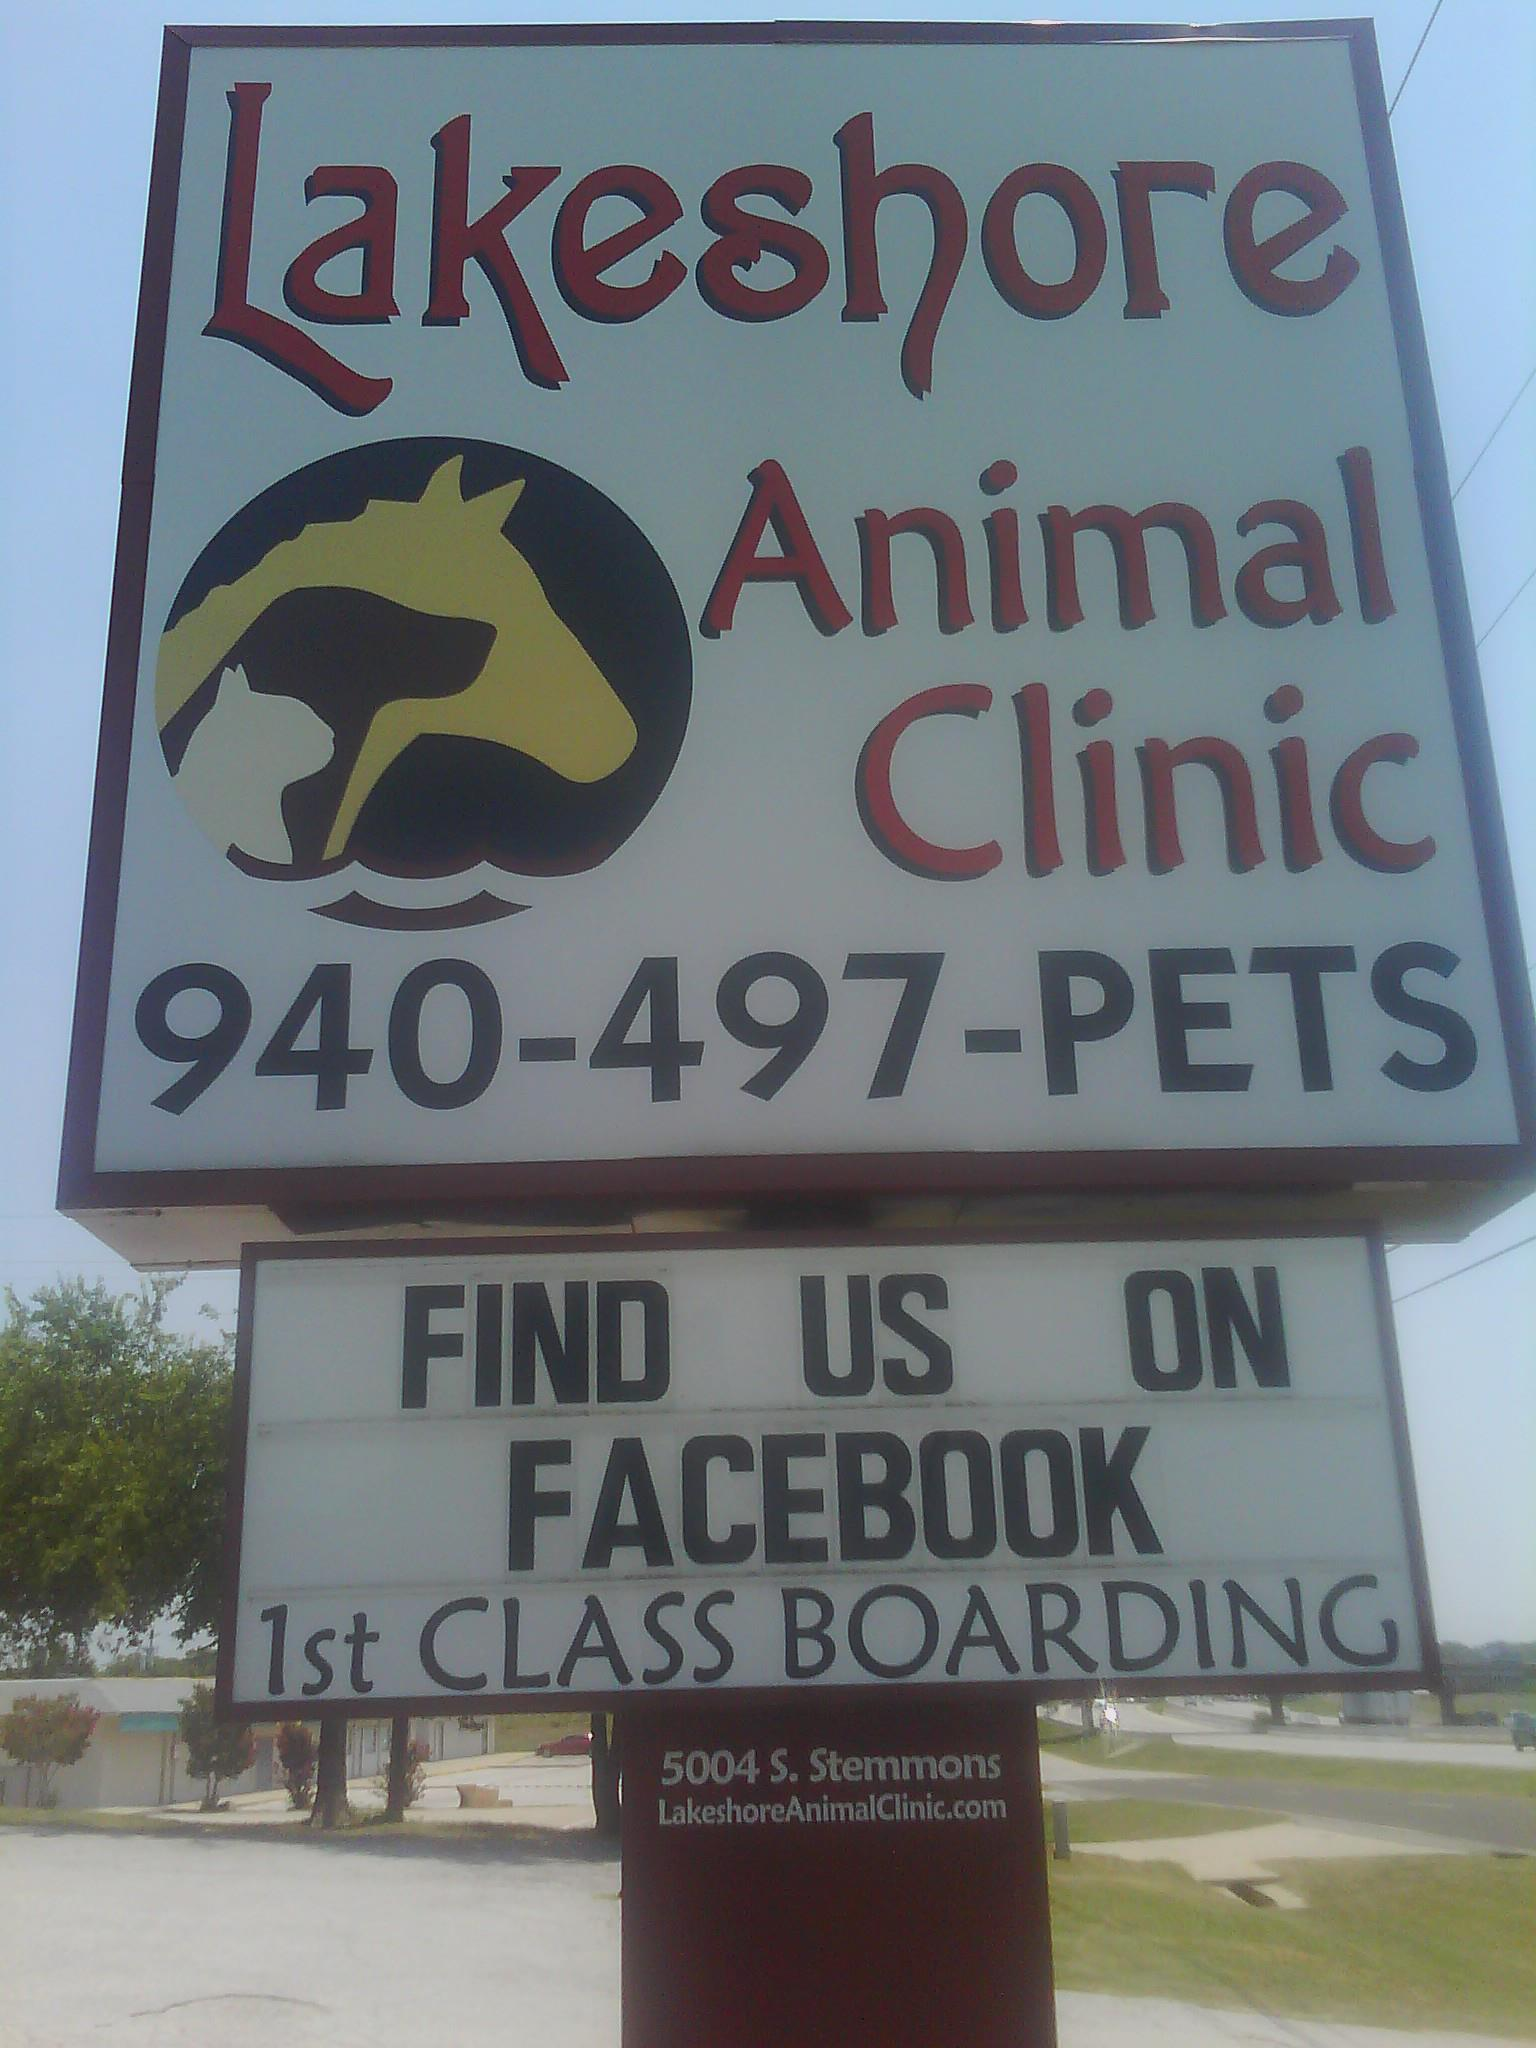 Lakeshore Animal Clinic - Boarding & Grooming - Veterinarian, Lake Dallas, Texas